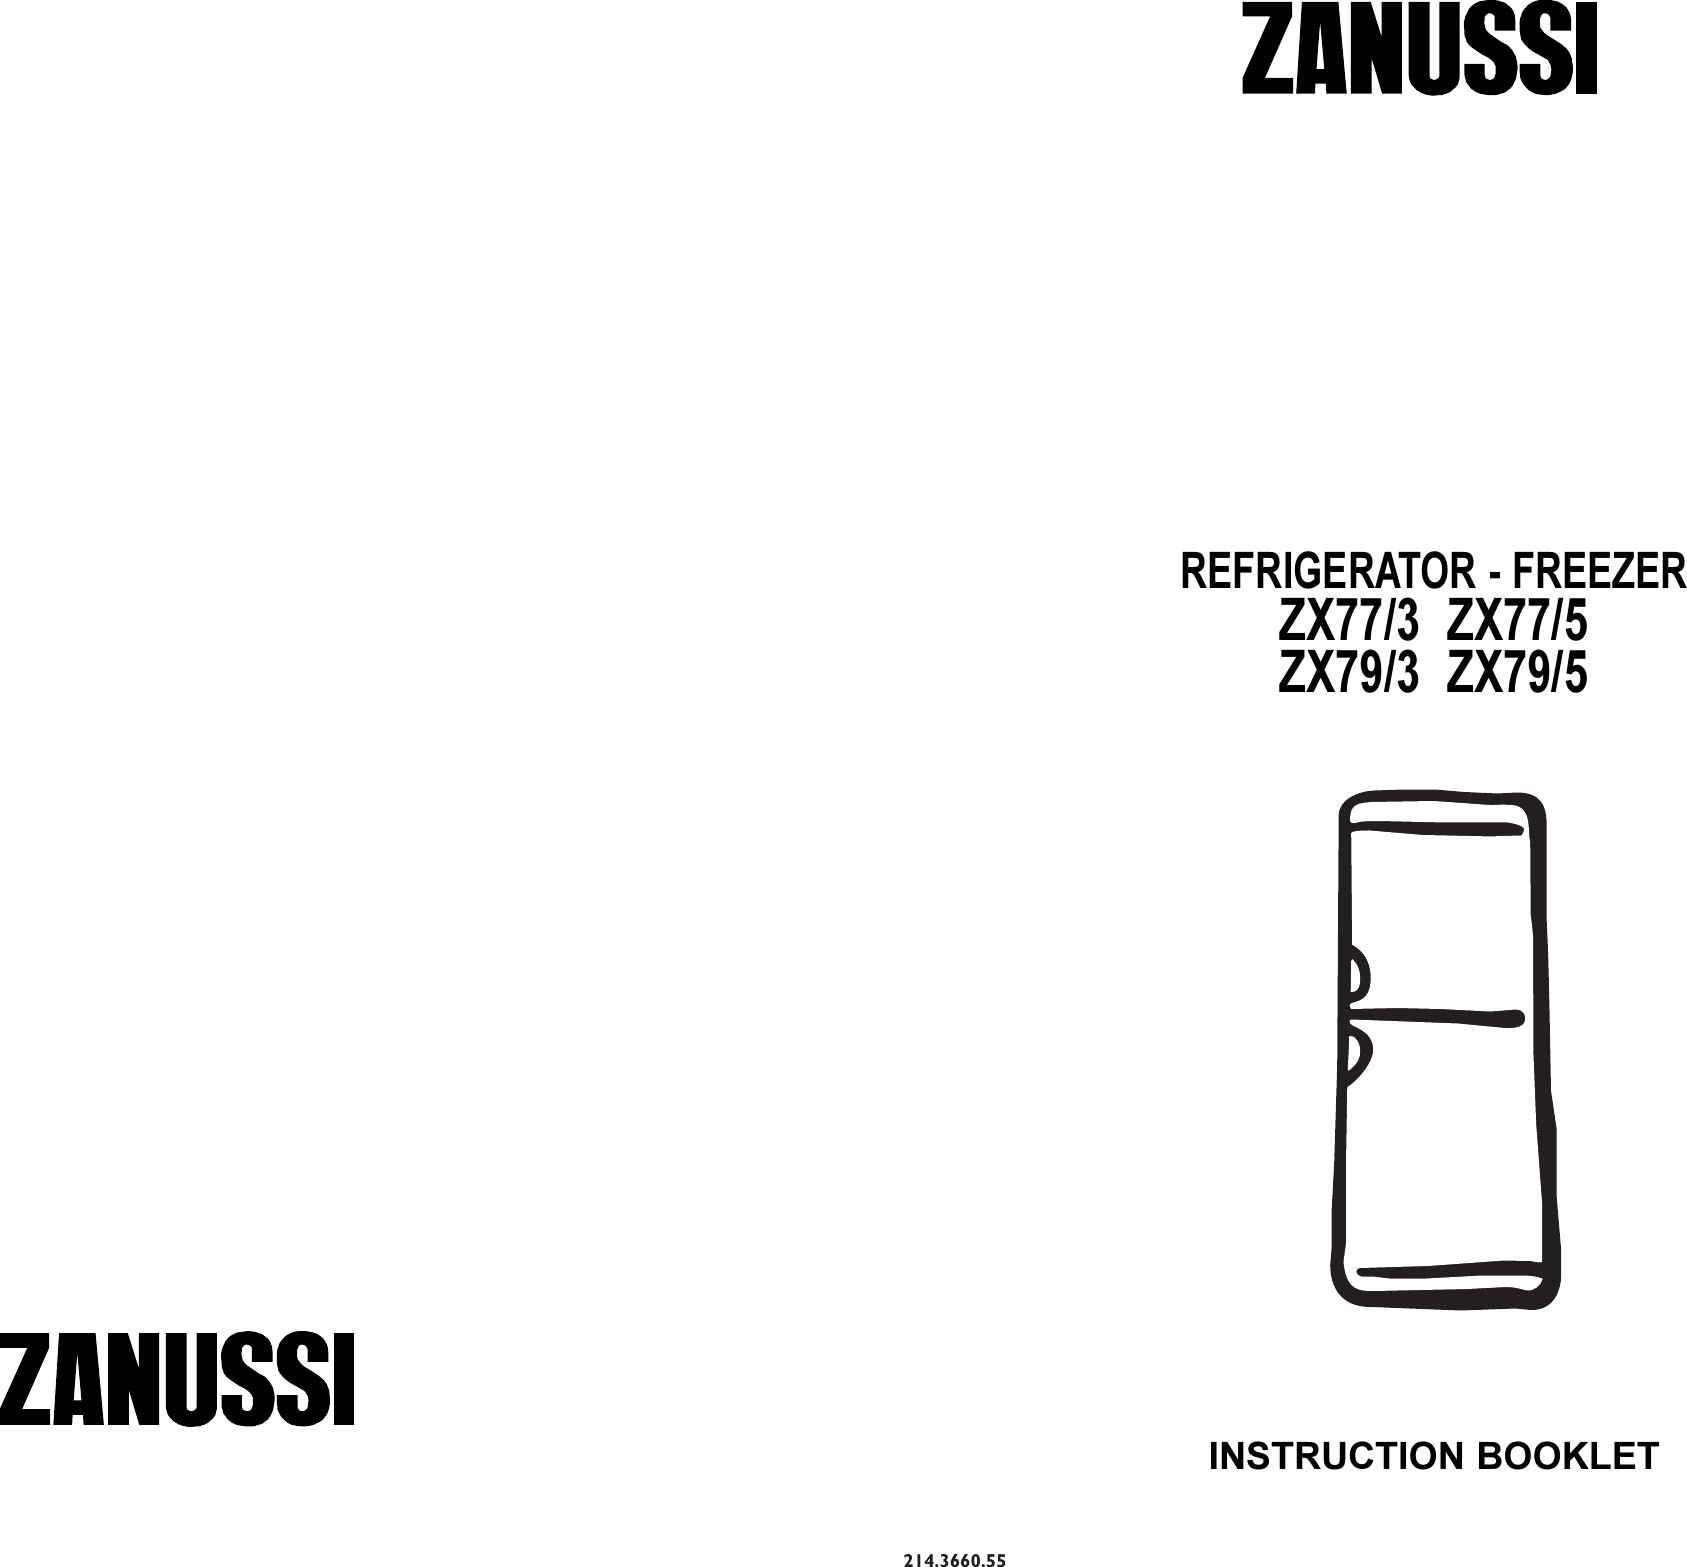 Zanussi Zx77 3 Owners Manual 214366055